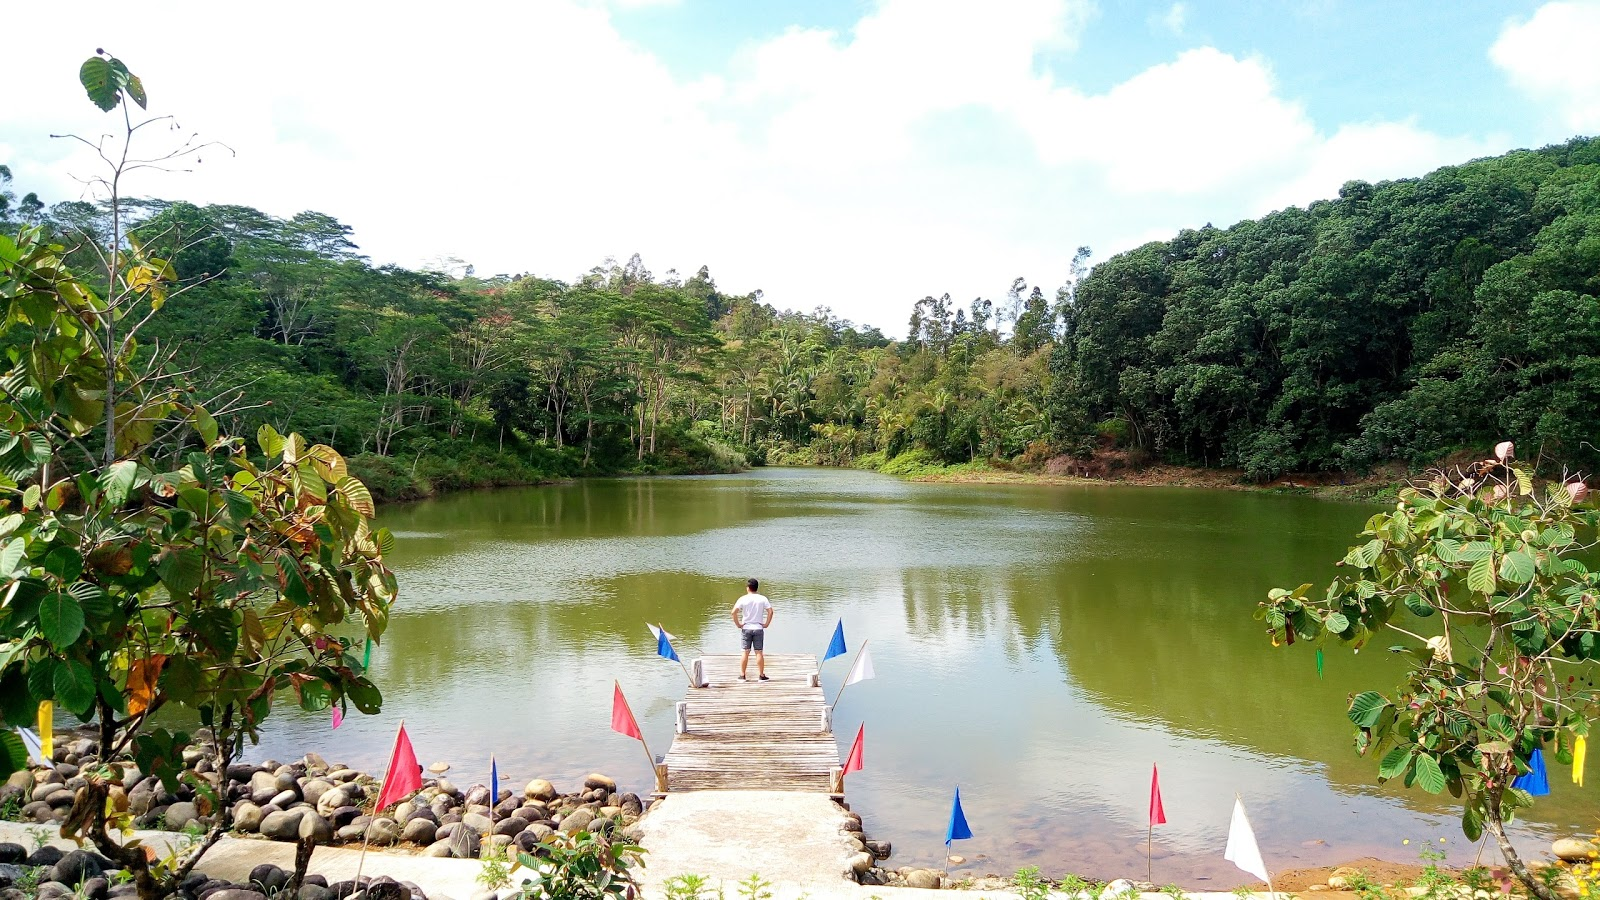 Siloy Lake, Calamba, Misamis Occidental